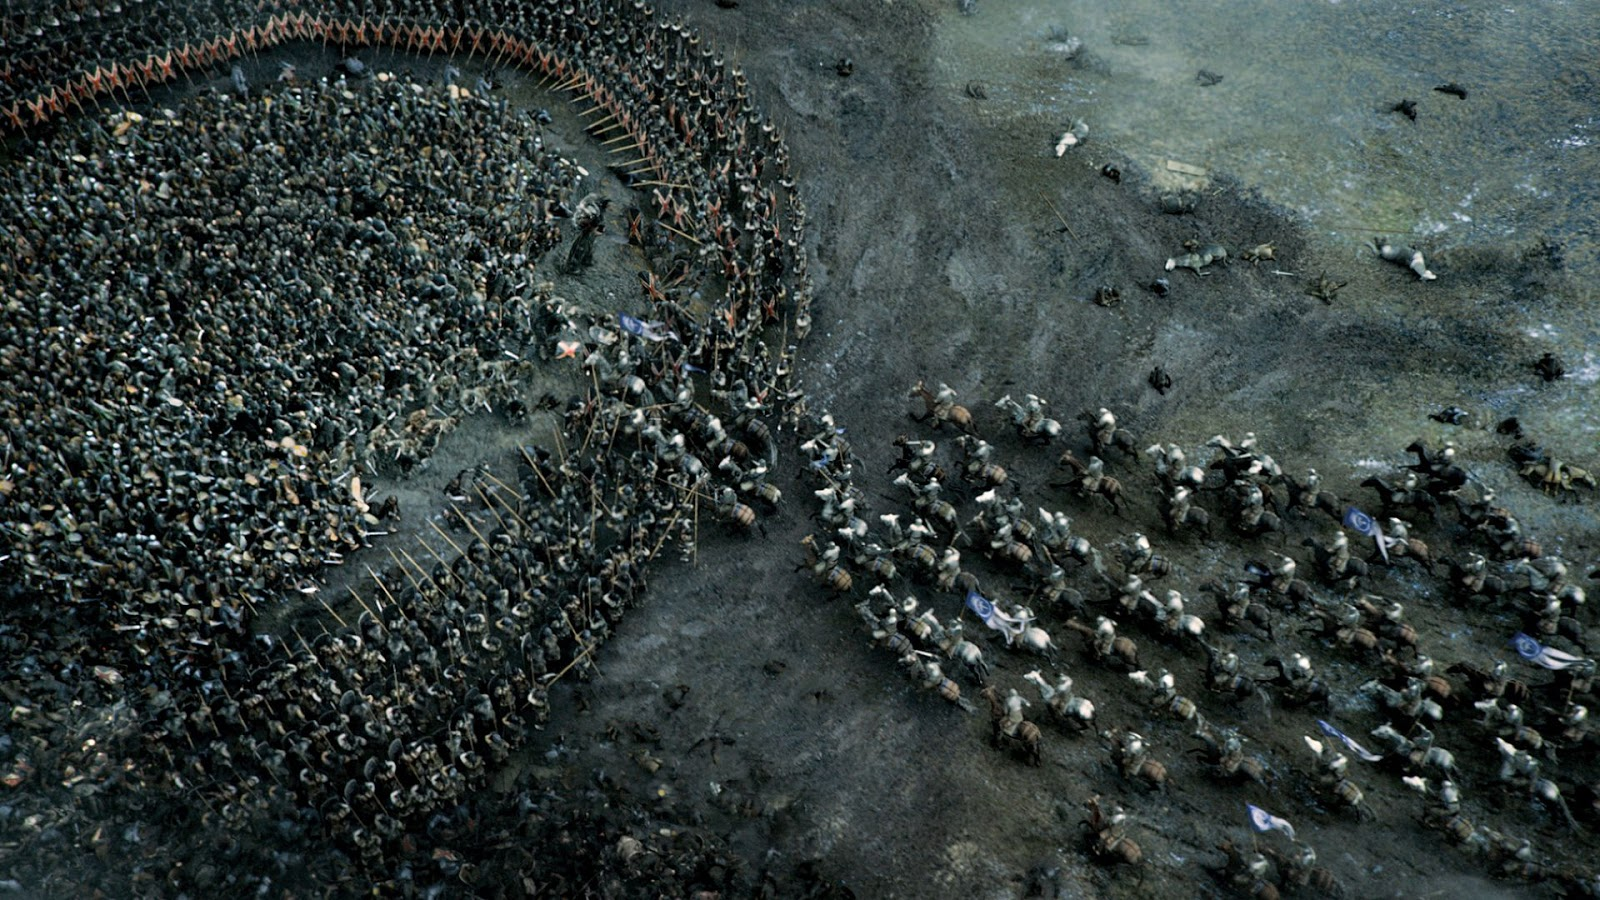 Game of Thrones took 55 nights to film new epic battle scene